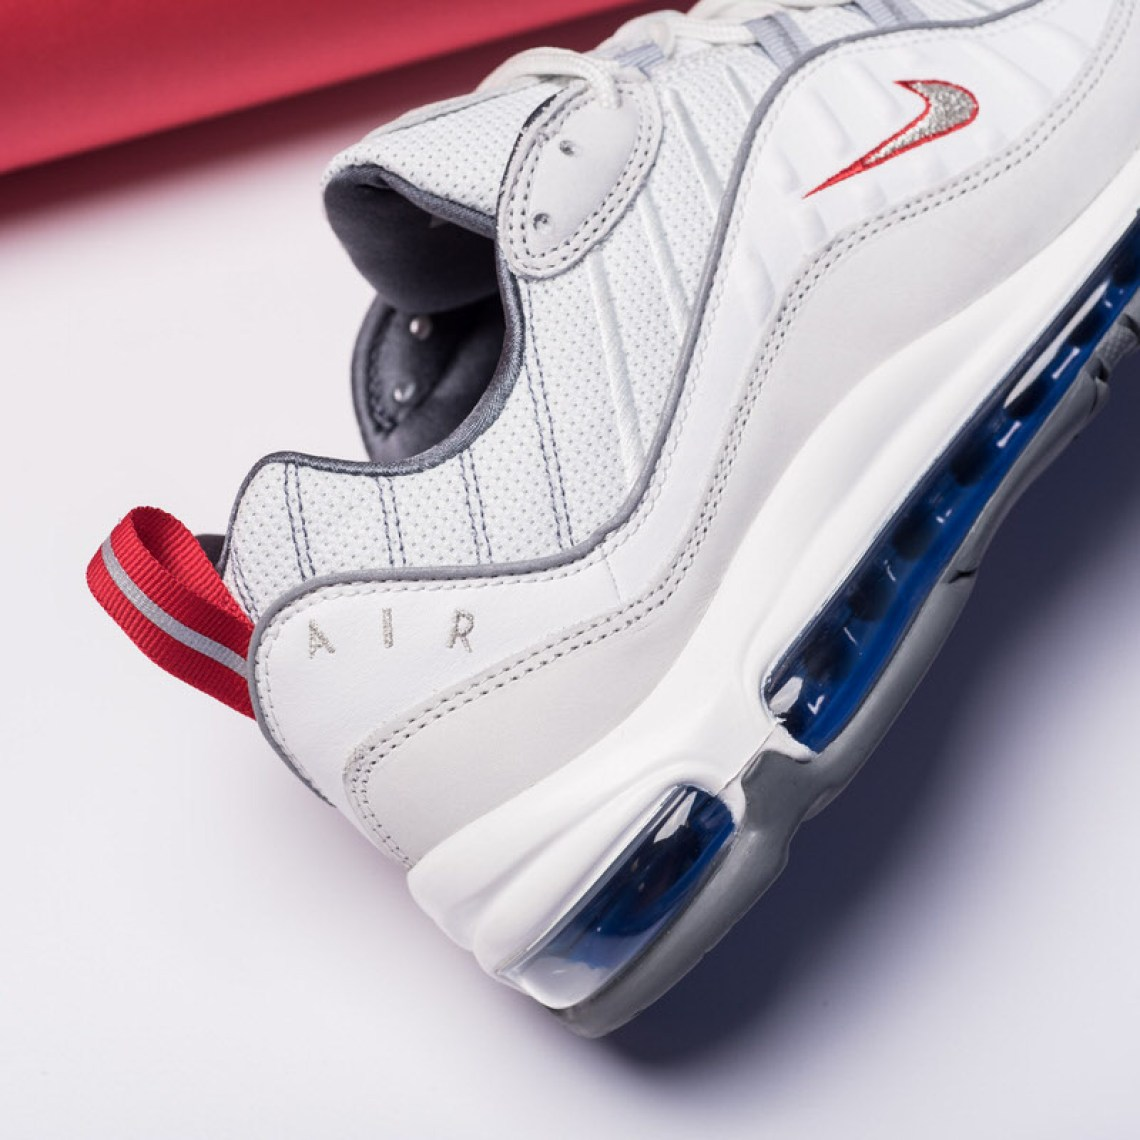 4a496e2459 Nike Air Max 98 Remains Hot with Icy Update | Nice Kicks